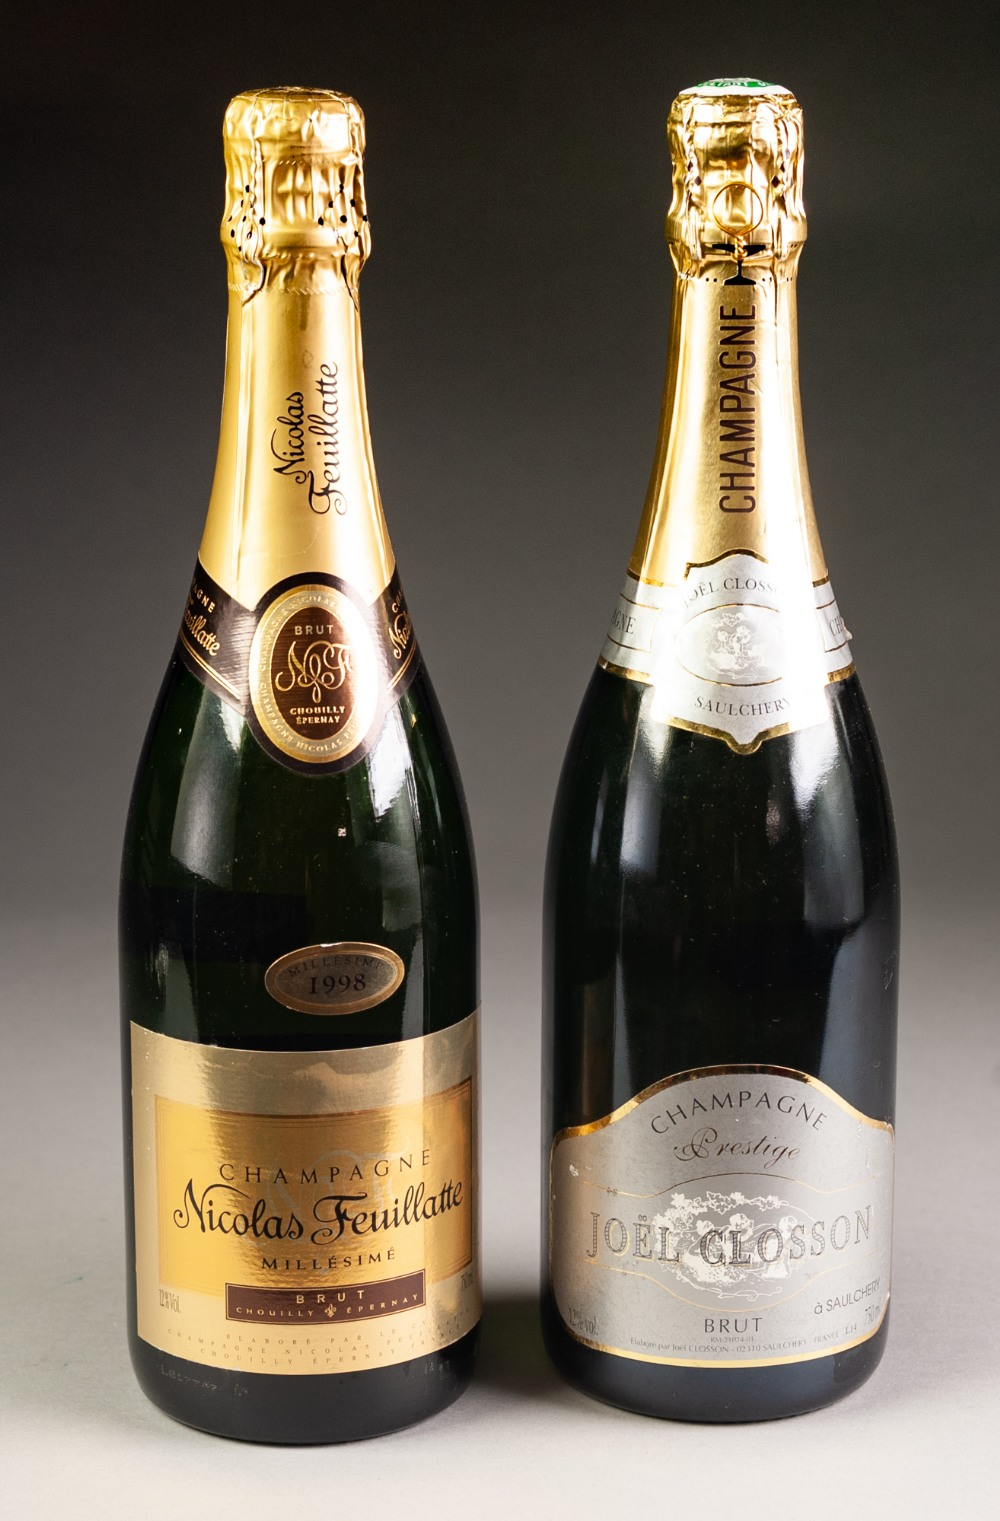 Lot 38 - TWO BOTTLES OF CHAMPAGNE, NICOLAS FEUILLATTE, 1998, and JOEL CLOSSON, no date, purchased by the